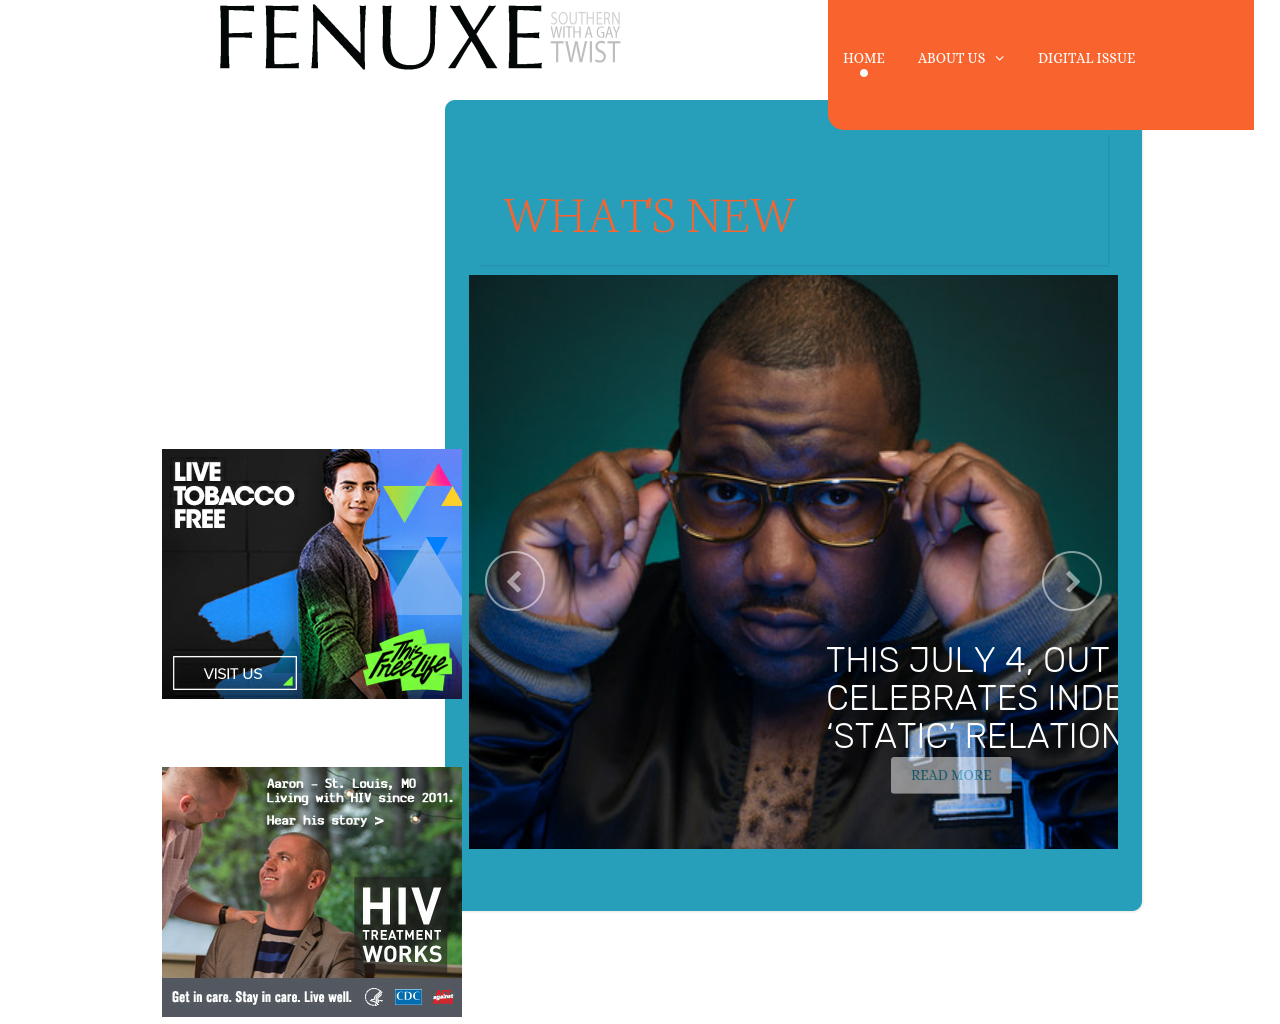 Fenuxe-Advertising-Reviews-Pricing